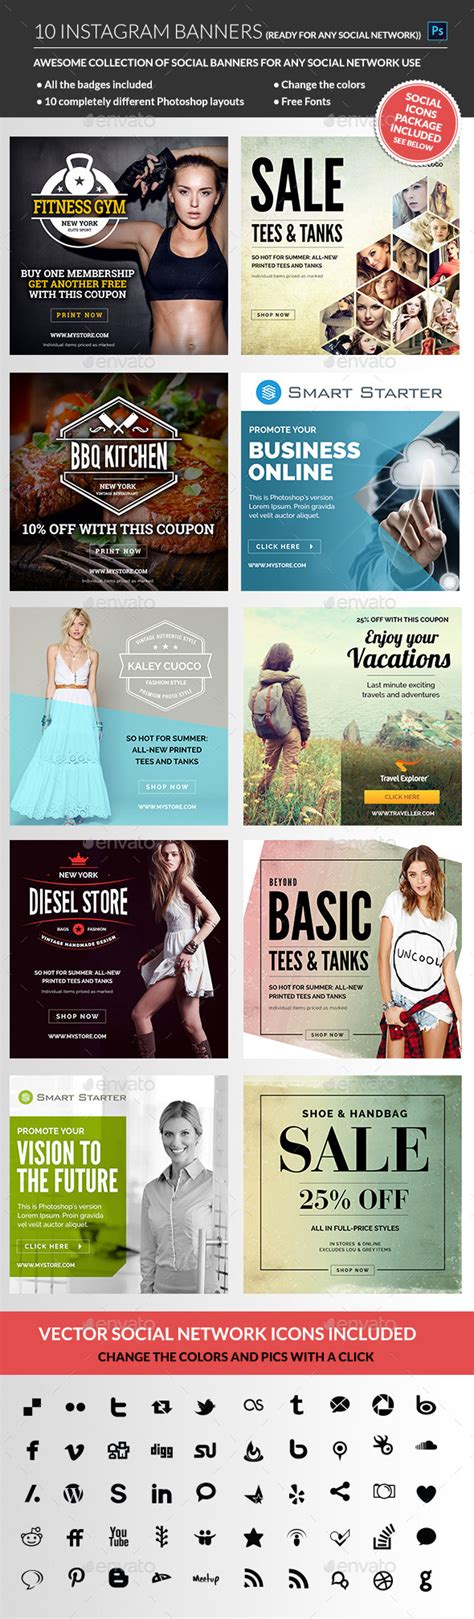 Instagram Banners Graphicriver Instagram Ad Template Psd